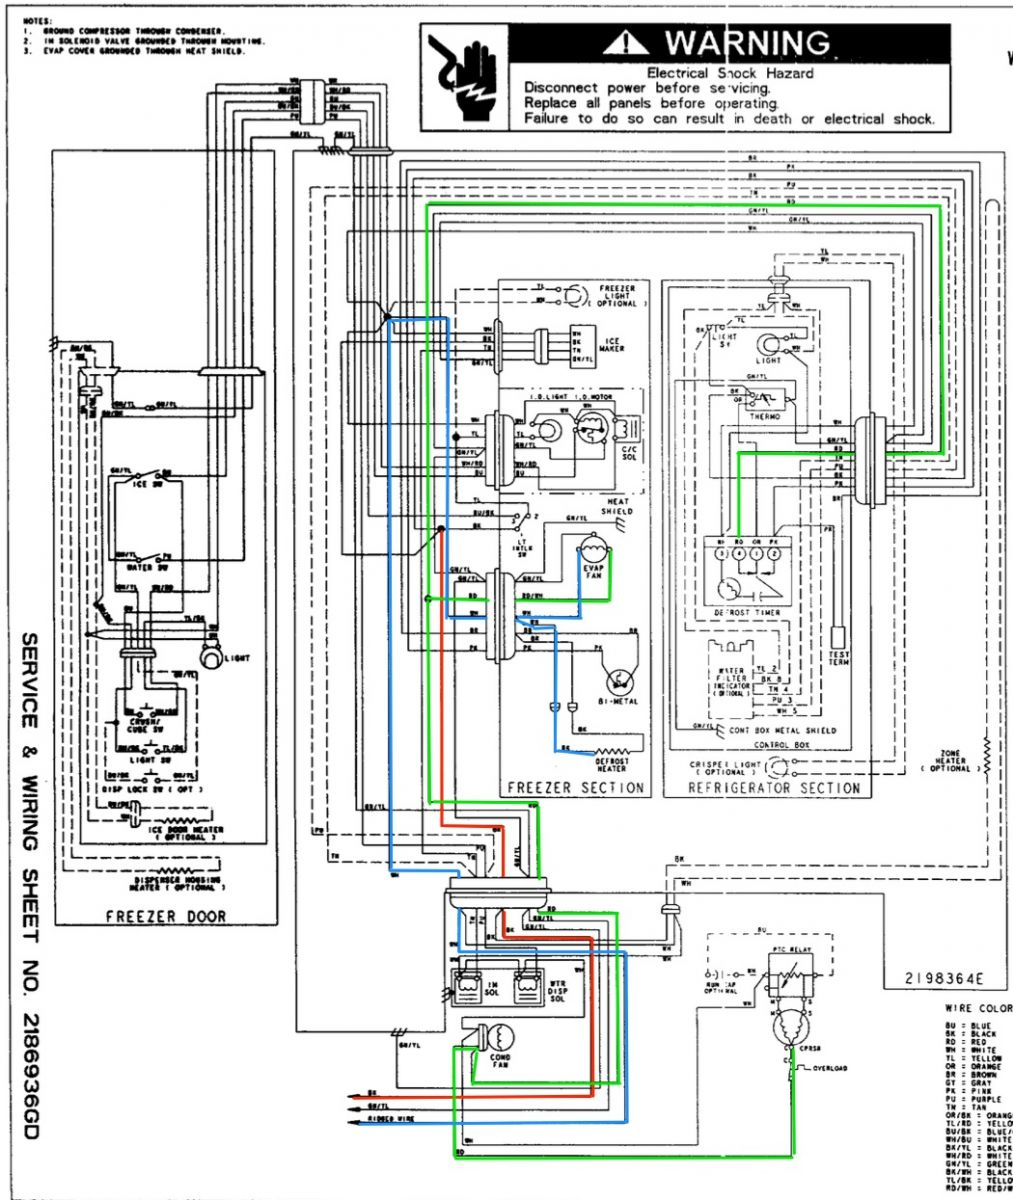 gallery_4_4_346879 whirlpool ed25rfxfw01 refrigerator wiring diagram the fridge freezer thermostat wiring diagram at virtualis.co